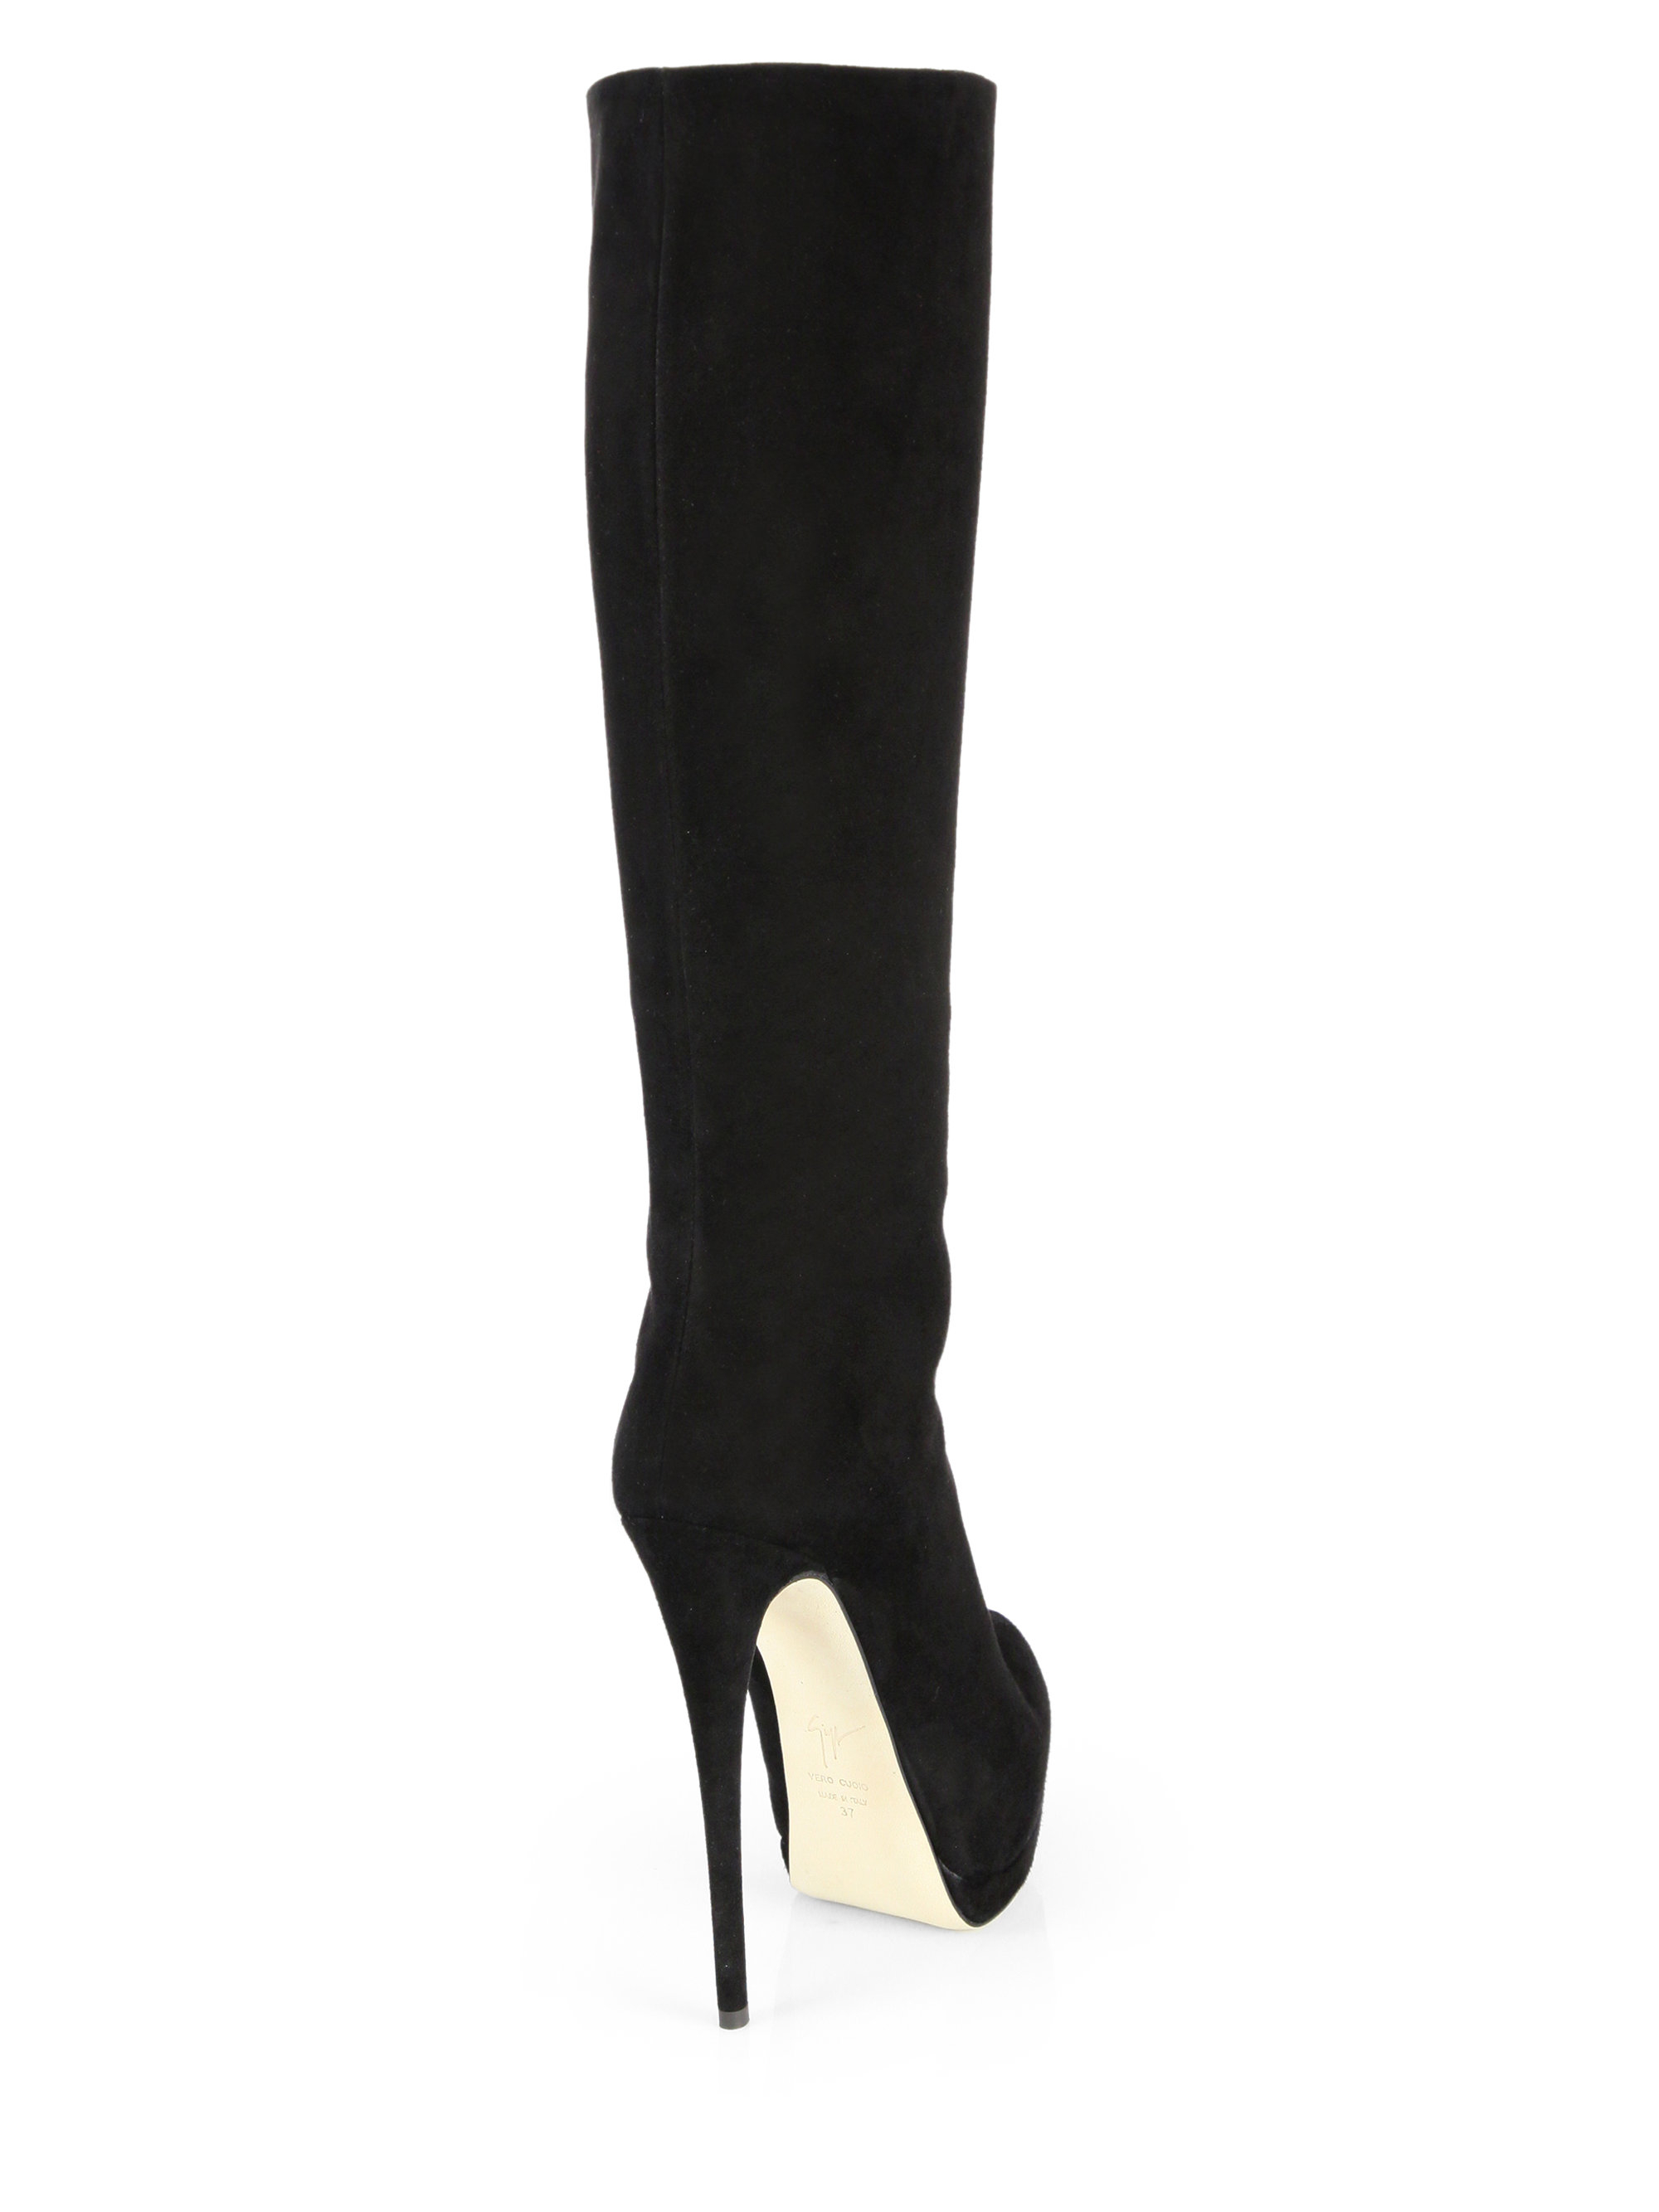 Giuseppe Zanotti Suede Knee-High Boots w/ Tags